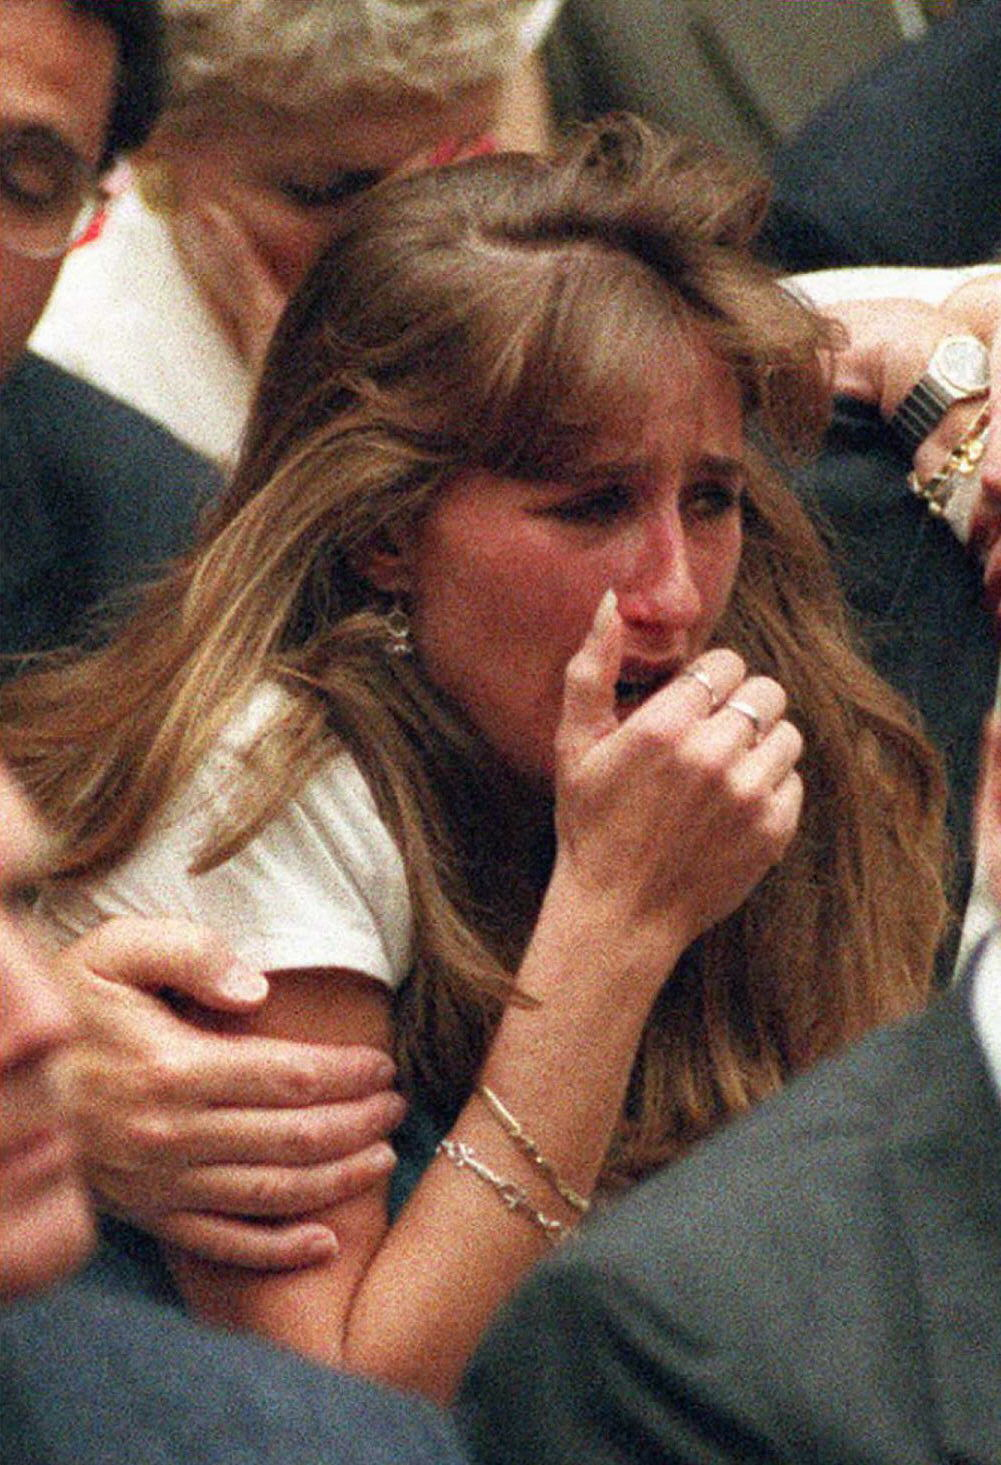 Kim Goldman, the sister of murder victim Ron Goldman, cries after the not guilty verdicts were read in the O.J. Simpson murder trial October 3, 1995 in Los Angeles, California.